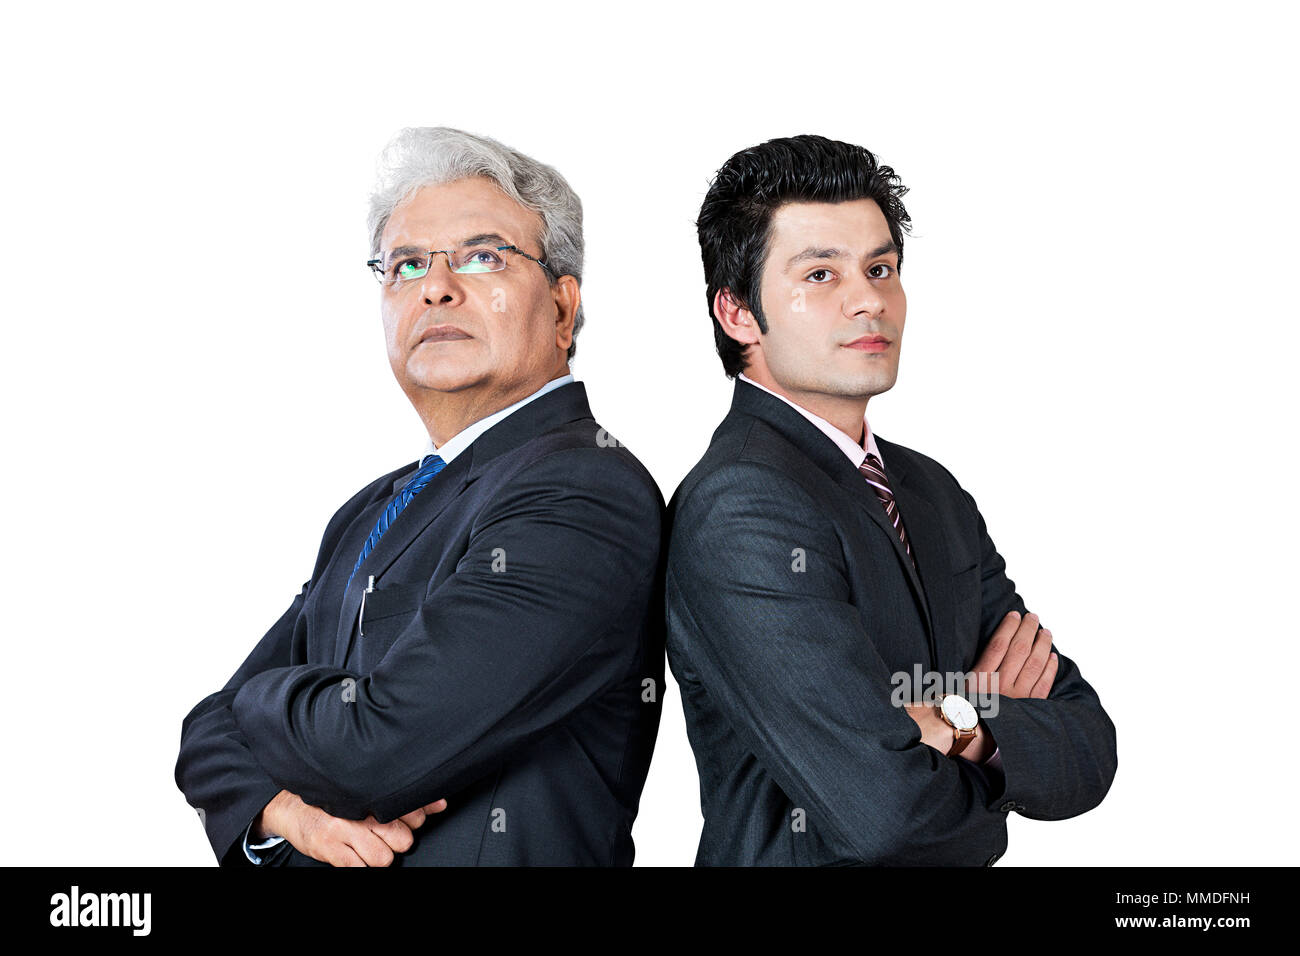 Serious Two Business male Colleague s Crossed-Arms Standing Pose Back-To-Back Concentration - Stock Image